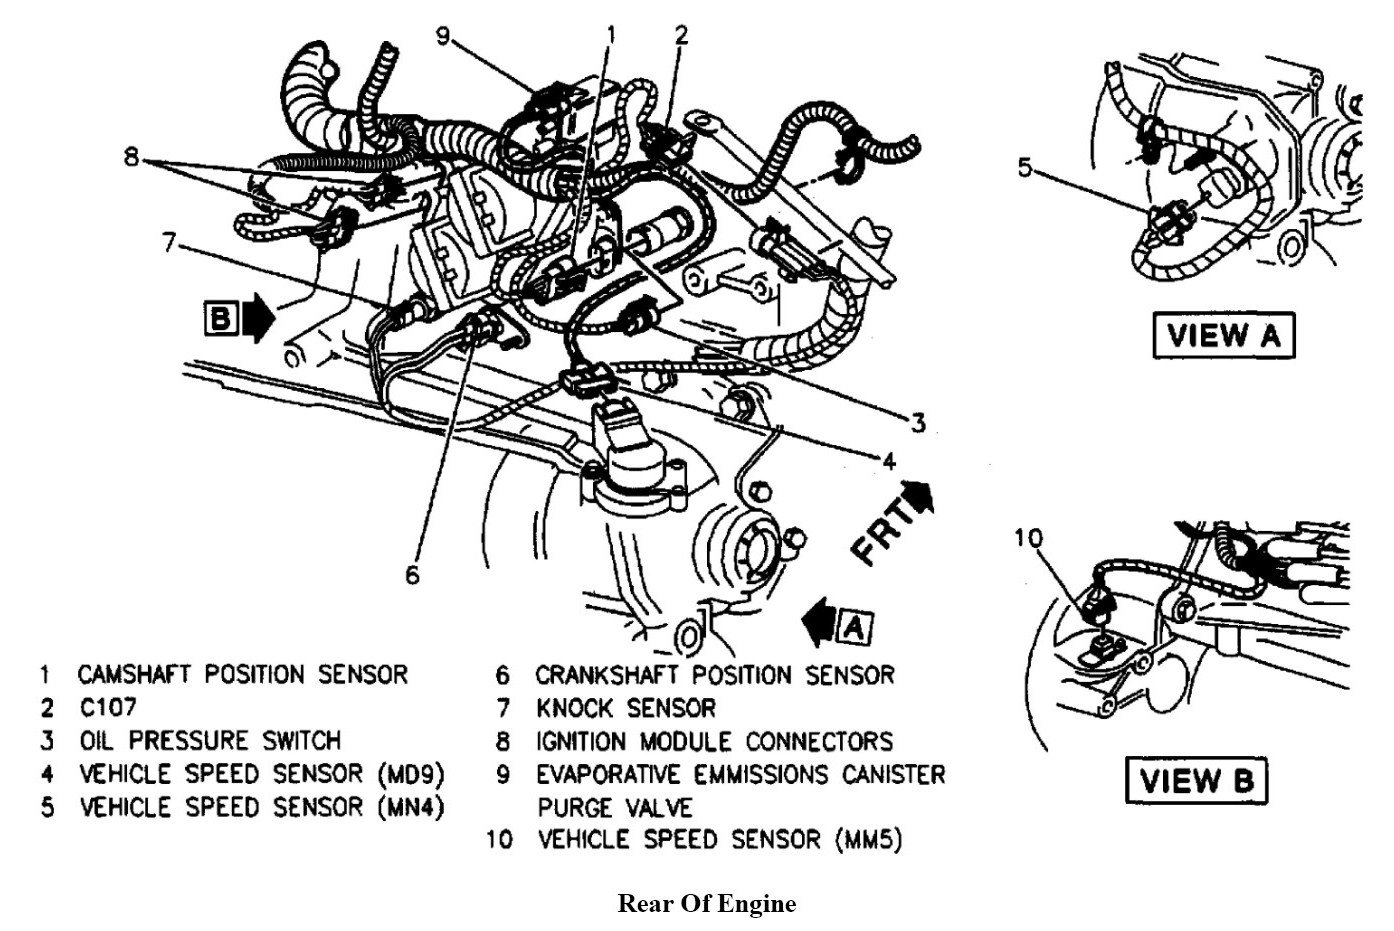 2000 cavalier z24 2 4 engine diagram all wiring diagram 2000 Cavalier Front Suspension Diagram